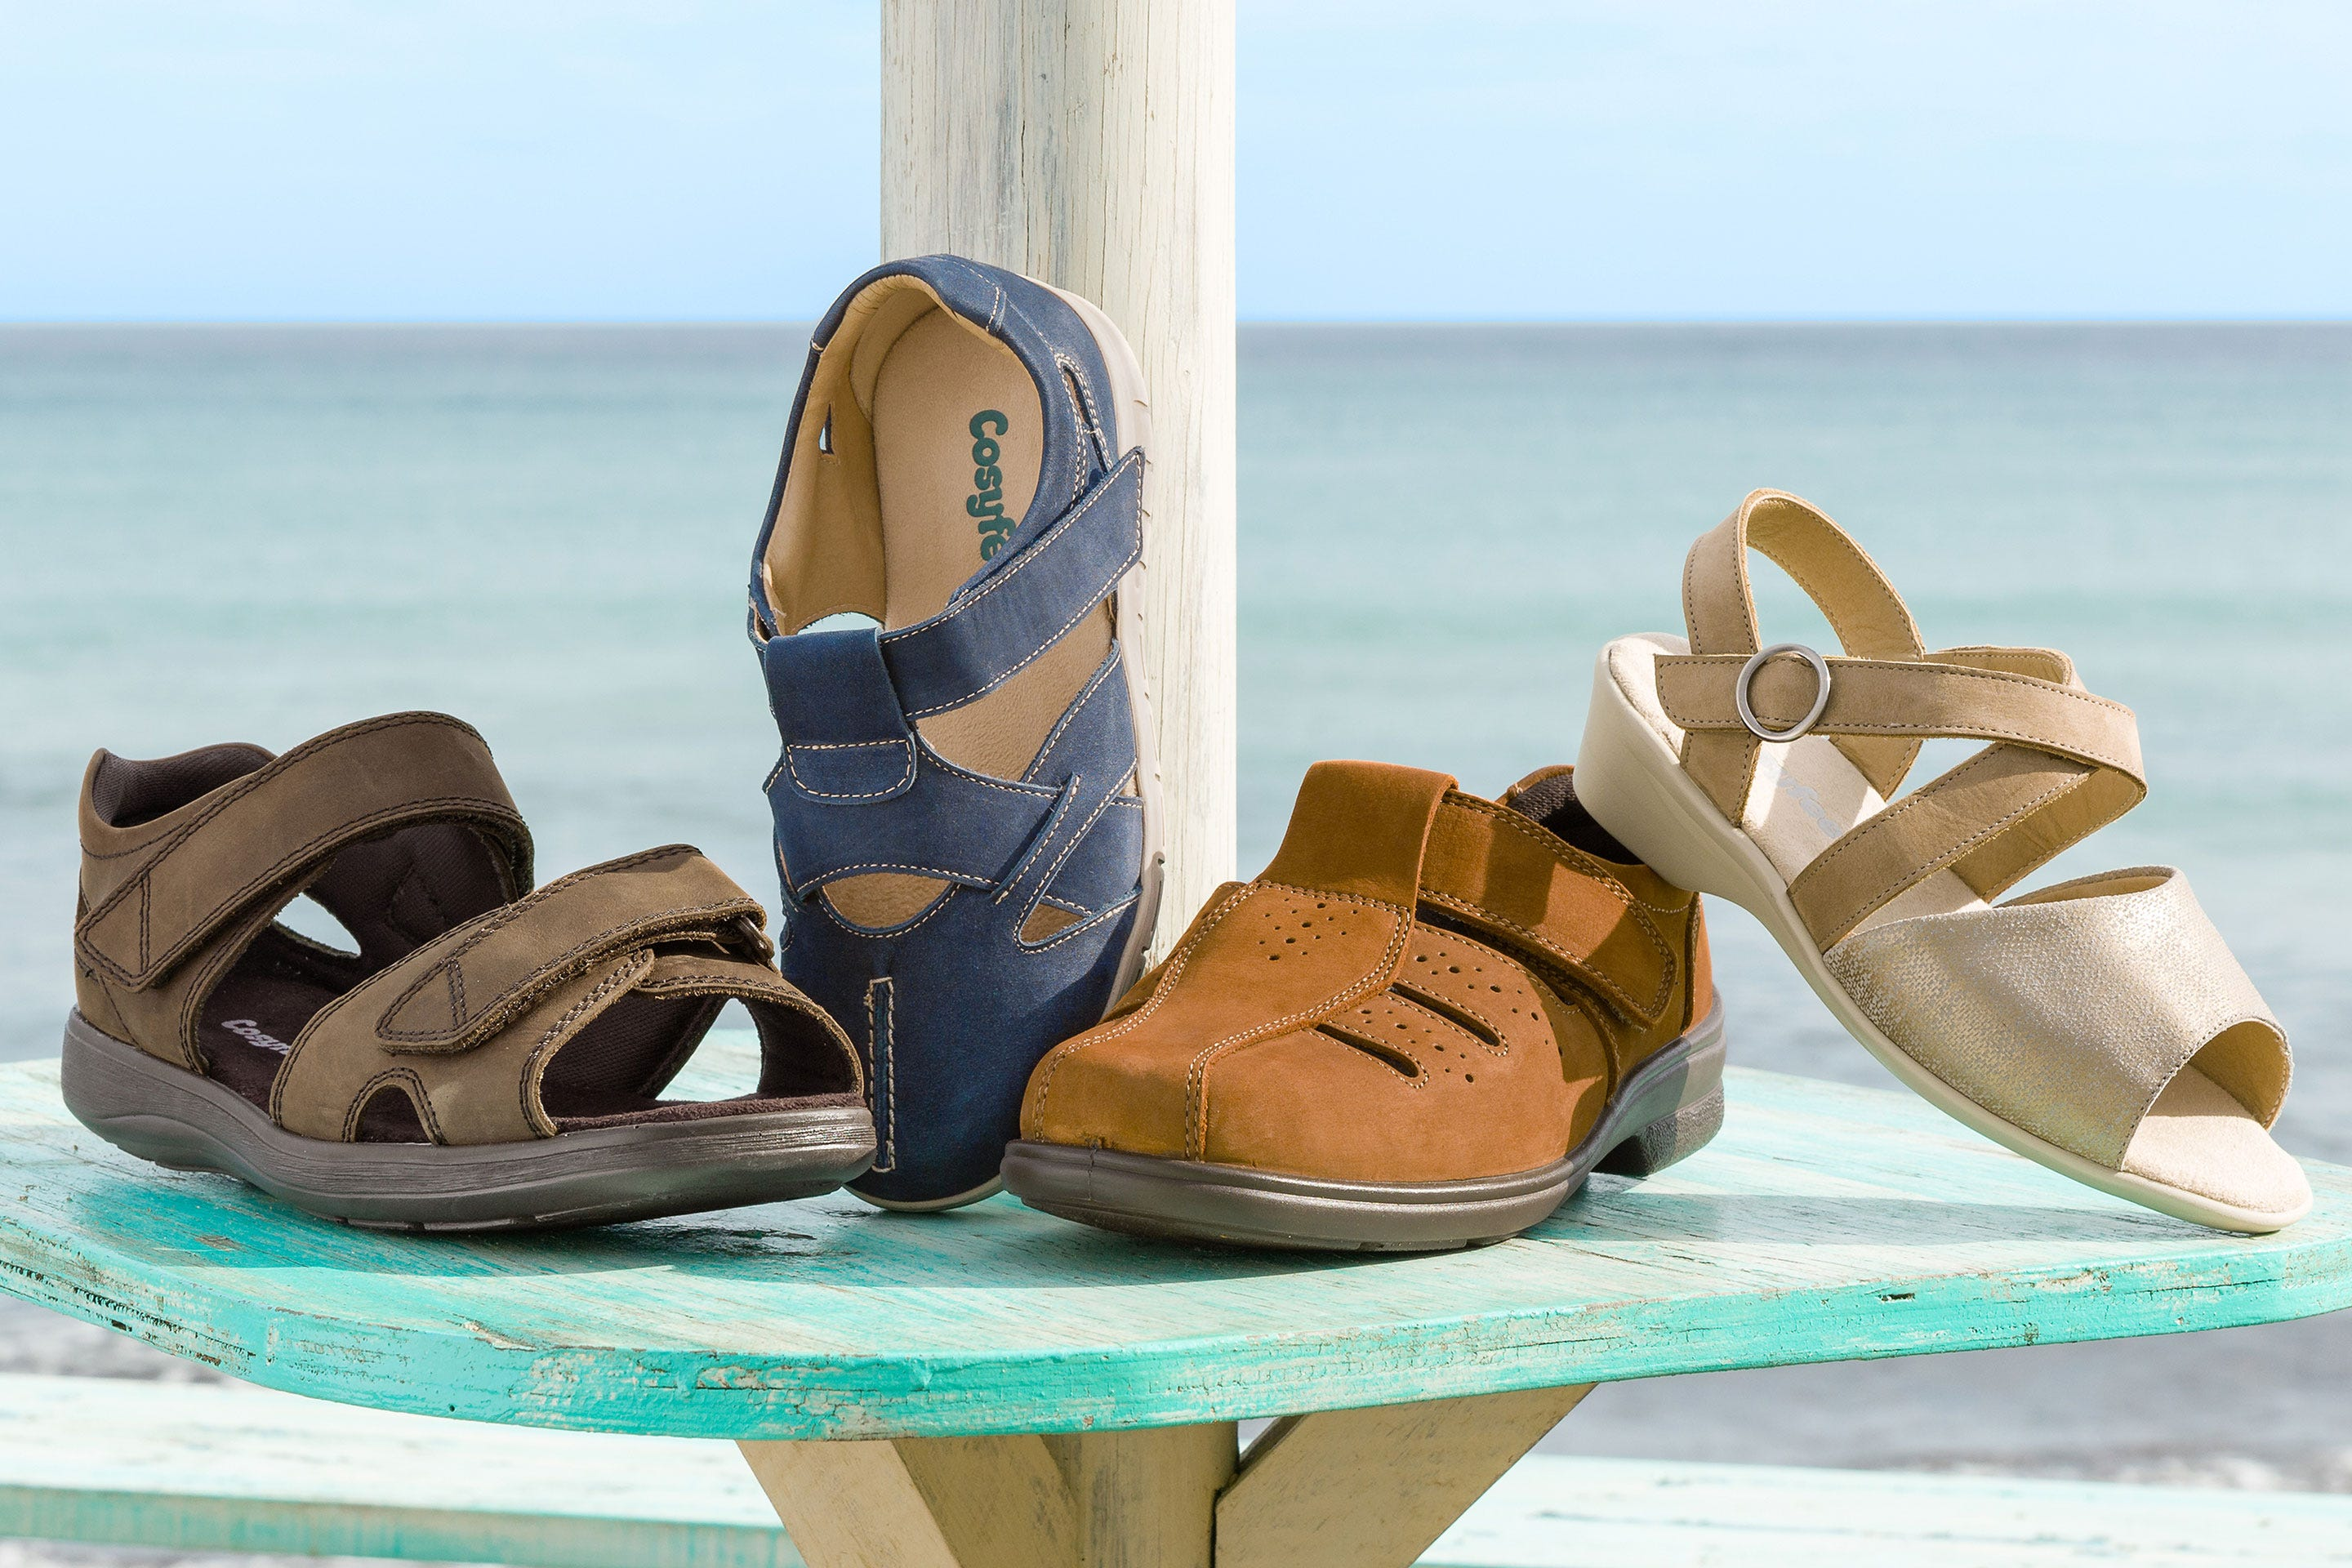 Four styles of extra roomy Cosyfeet sandals